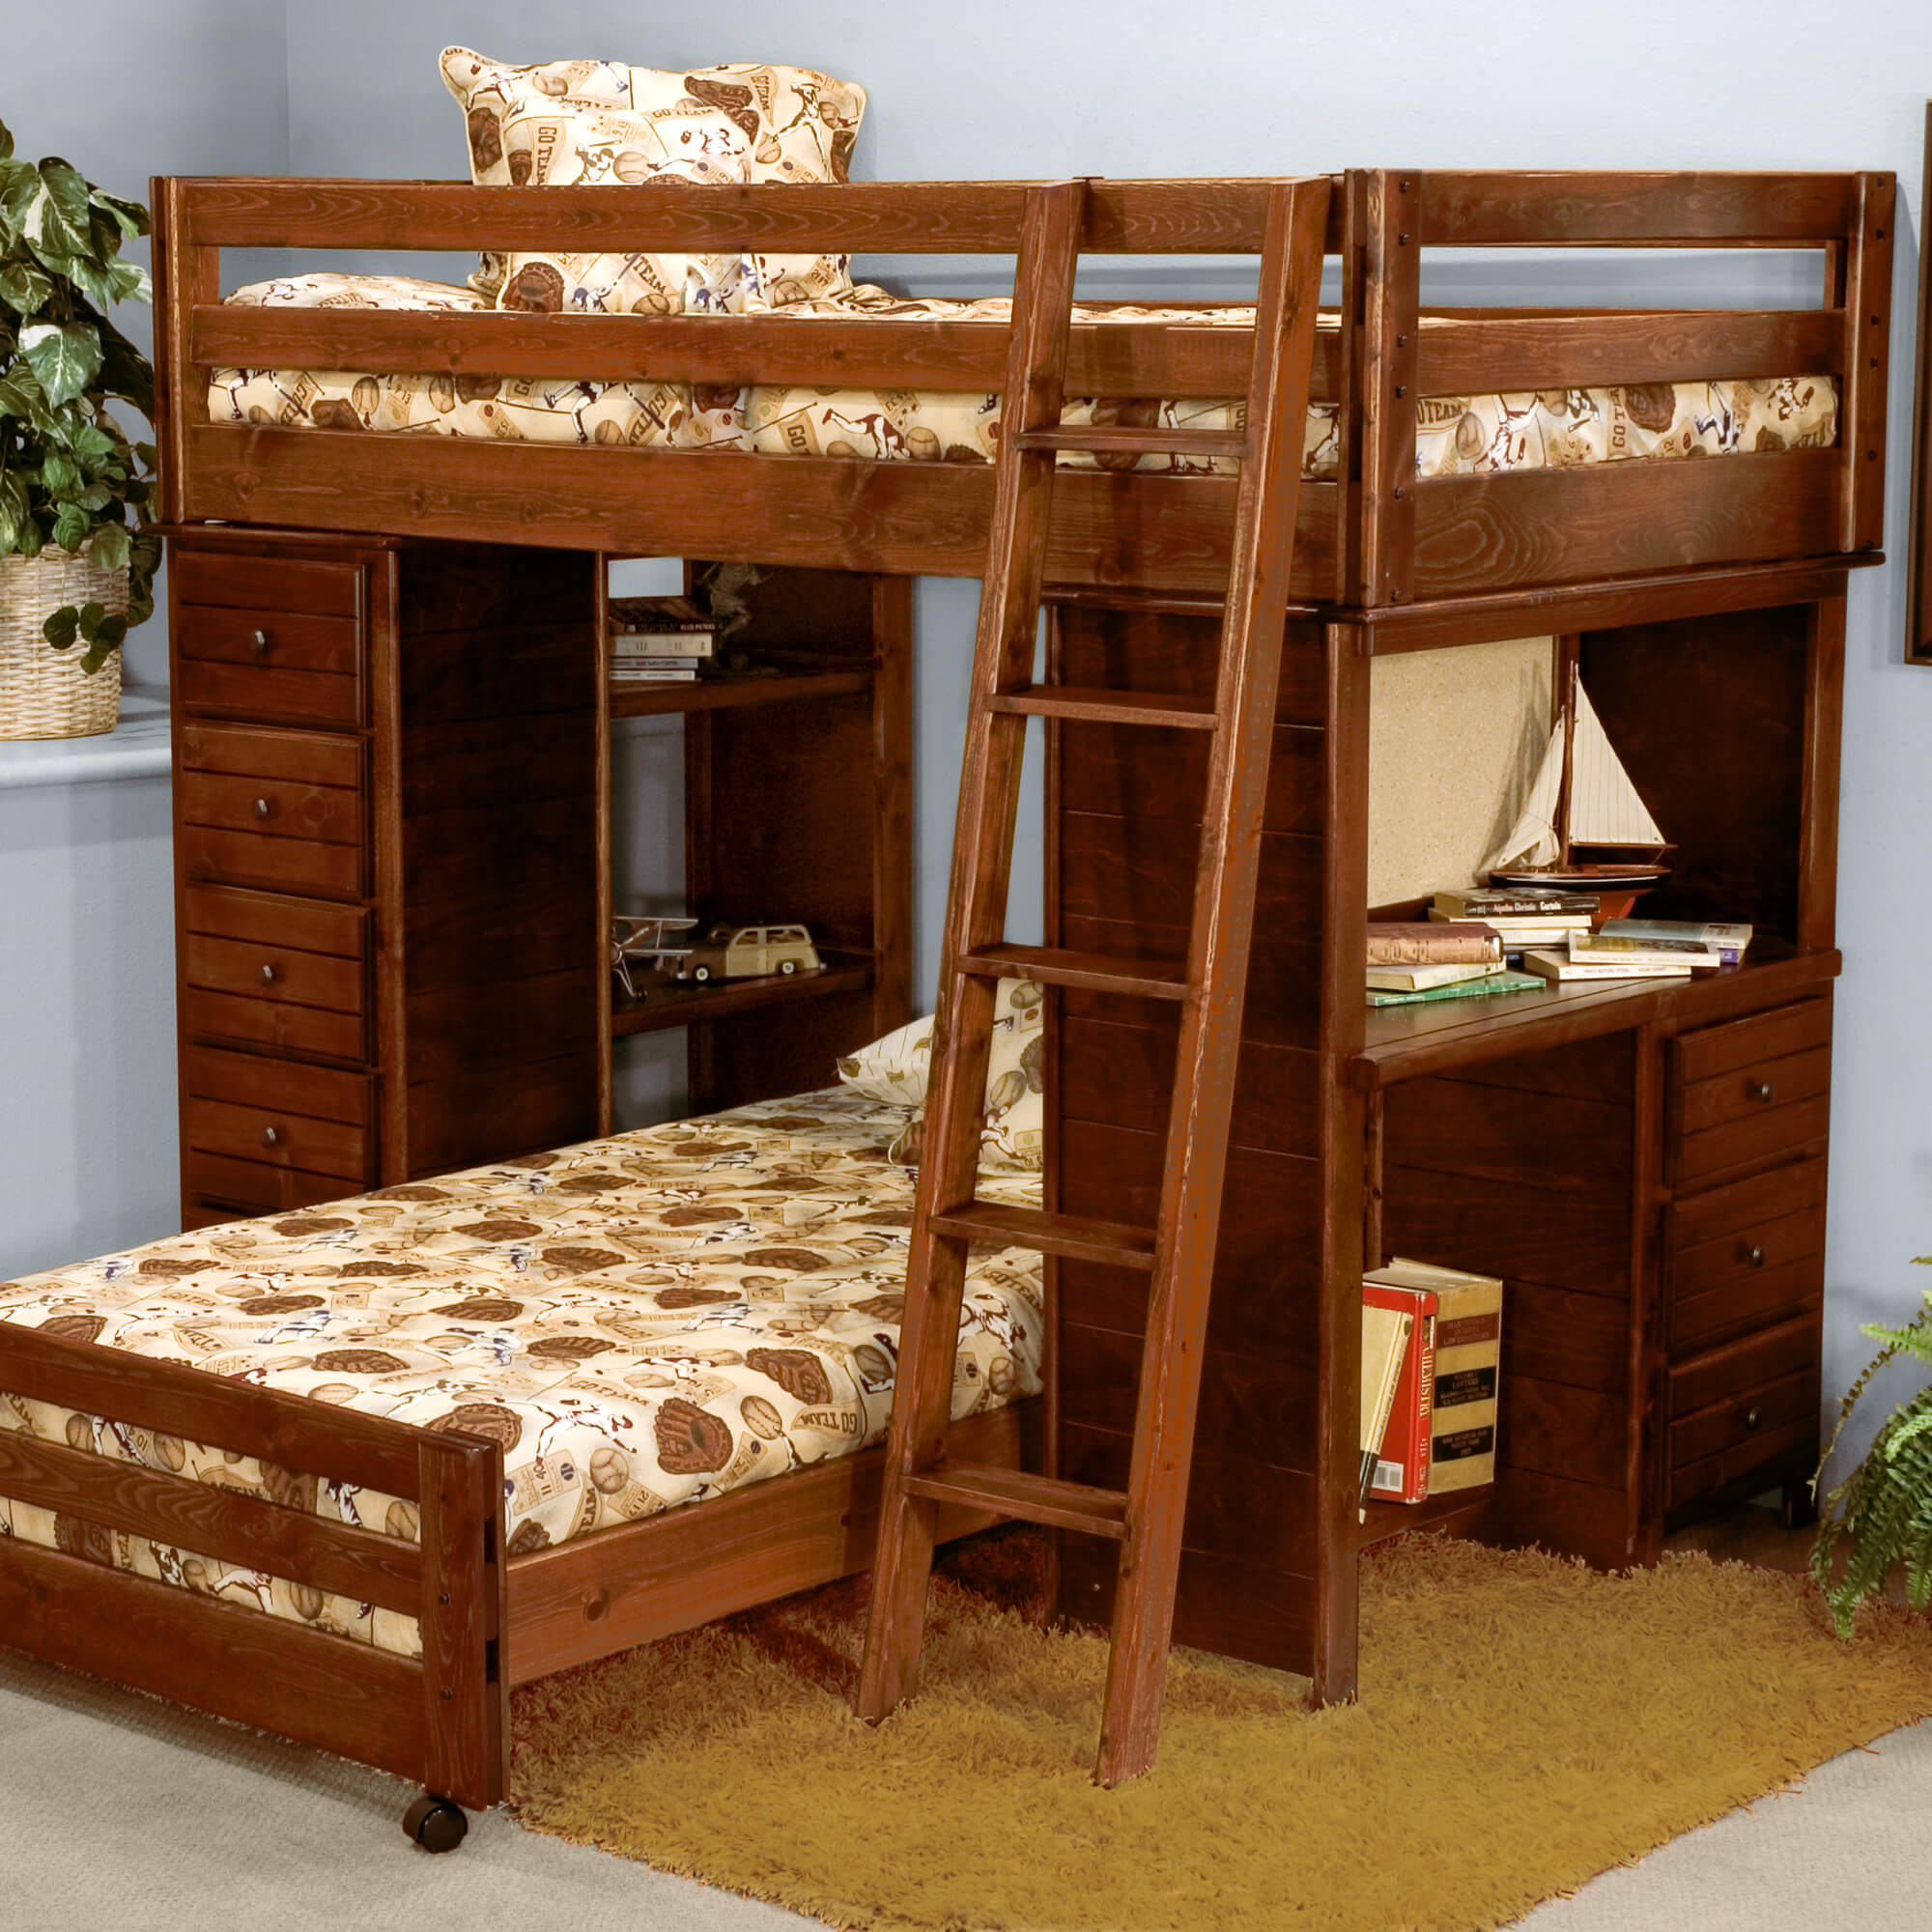 Modern bunk beds with desk - Modern Bunk Beds With Desk 51